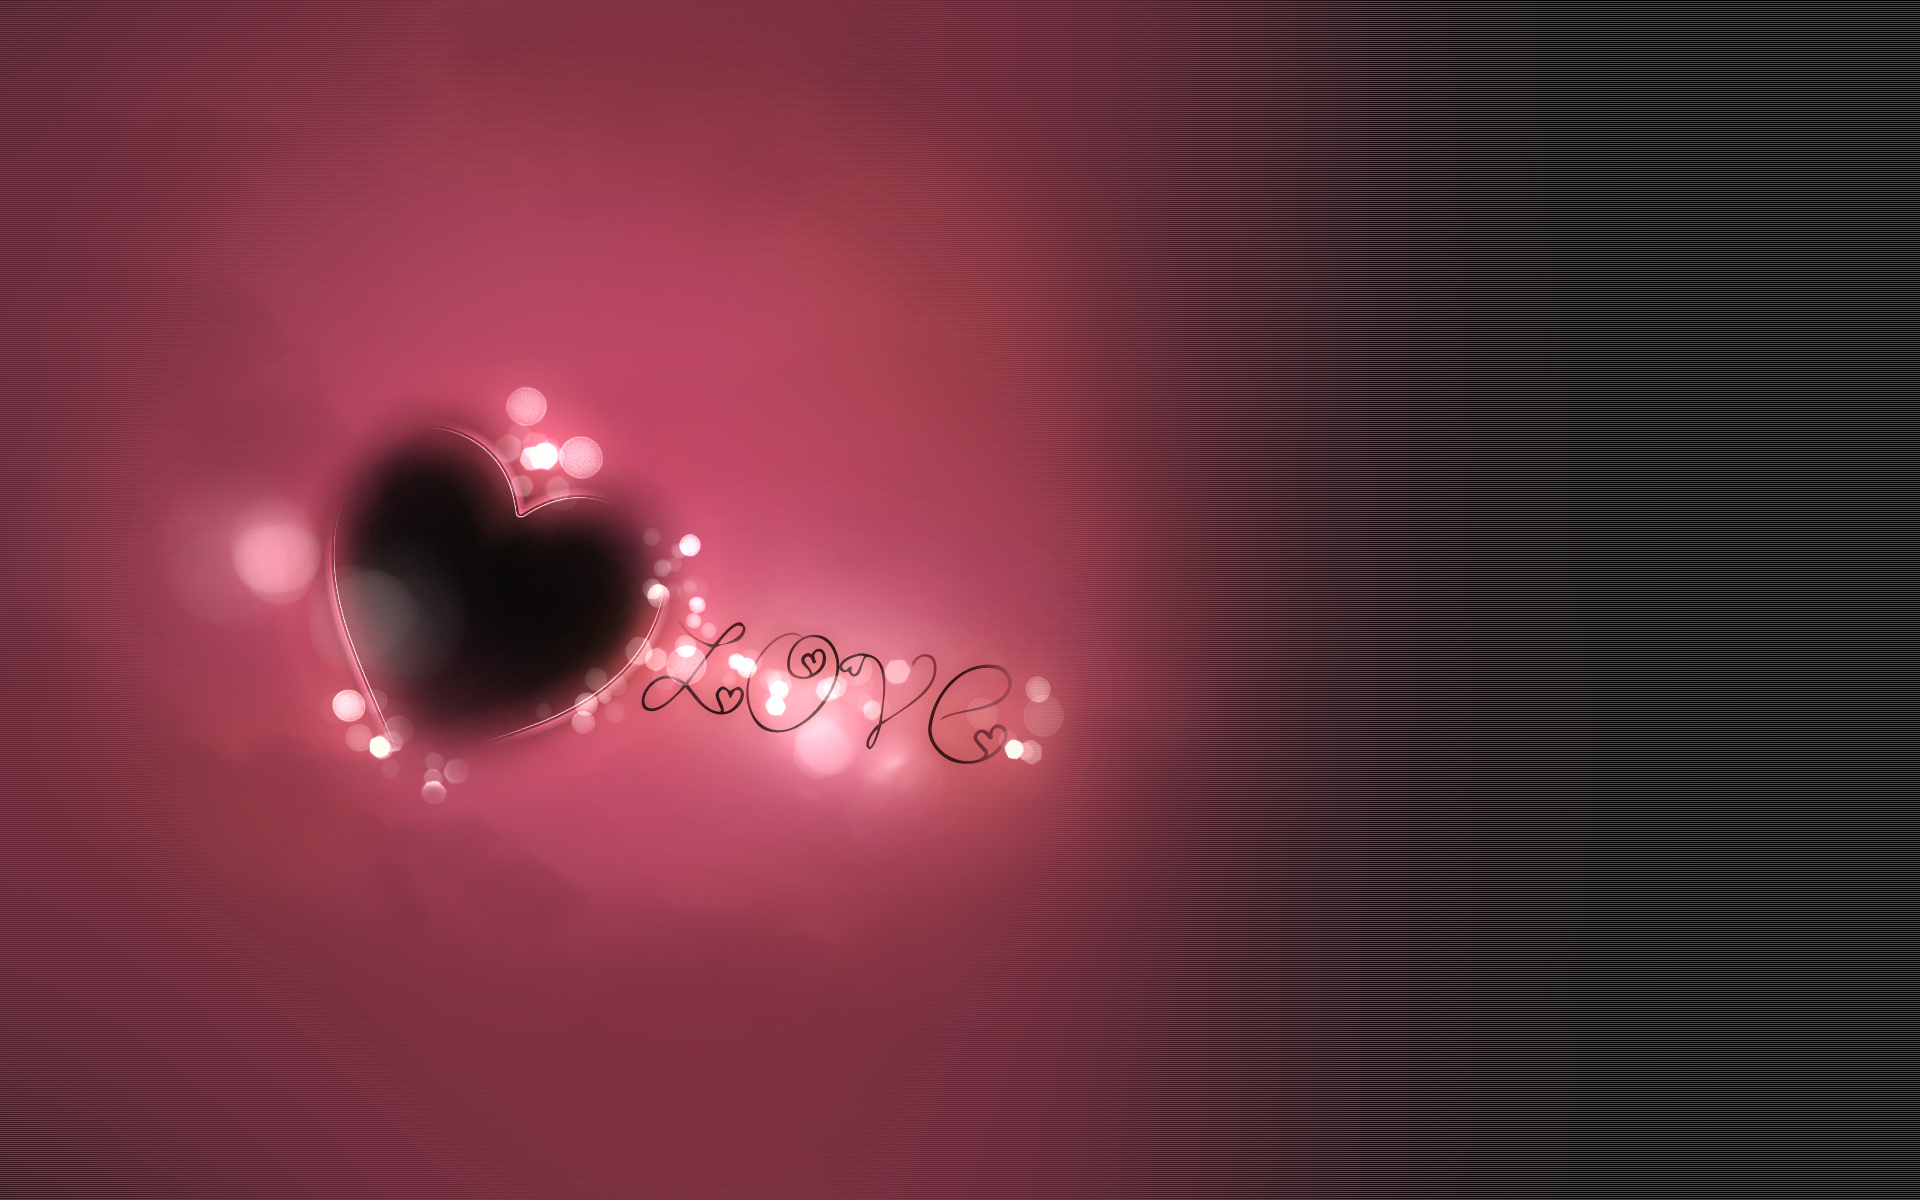 Love Wallpapers View : Romantic Love Heart Wallpapers - 1920x1200 - 939180